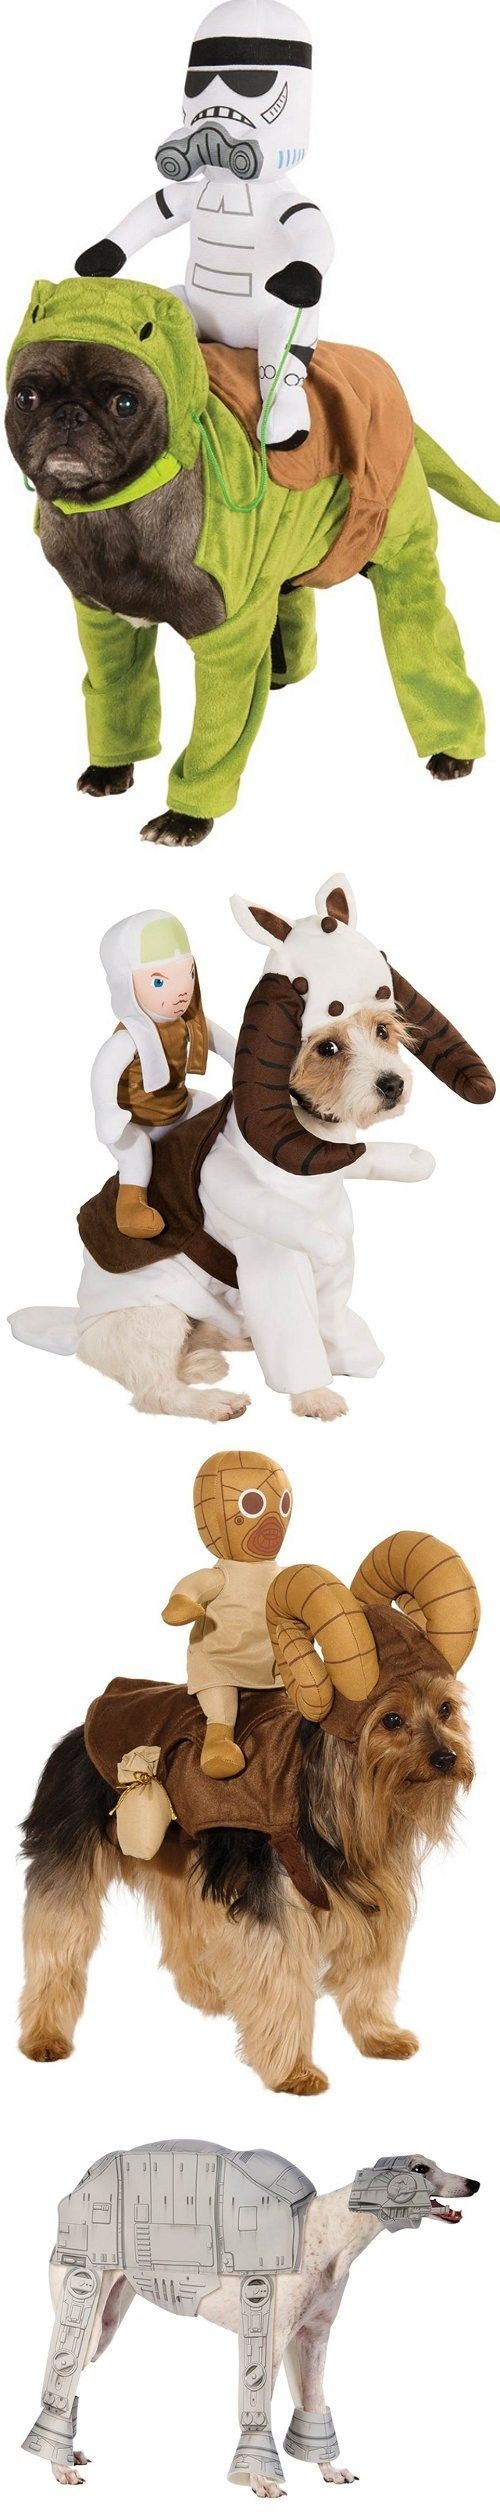 Star Wars Costumes for Dogs- seriously, I just laughed my ass off for 5 straight minutes over this